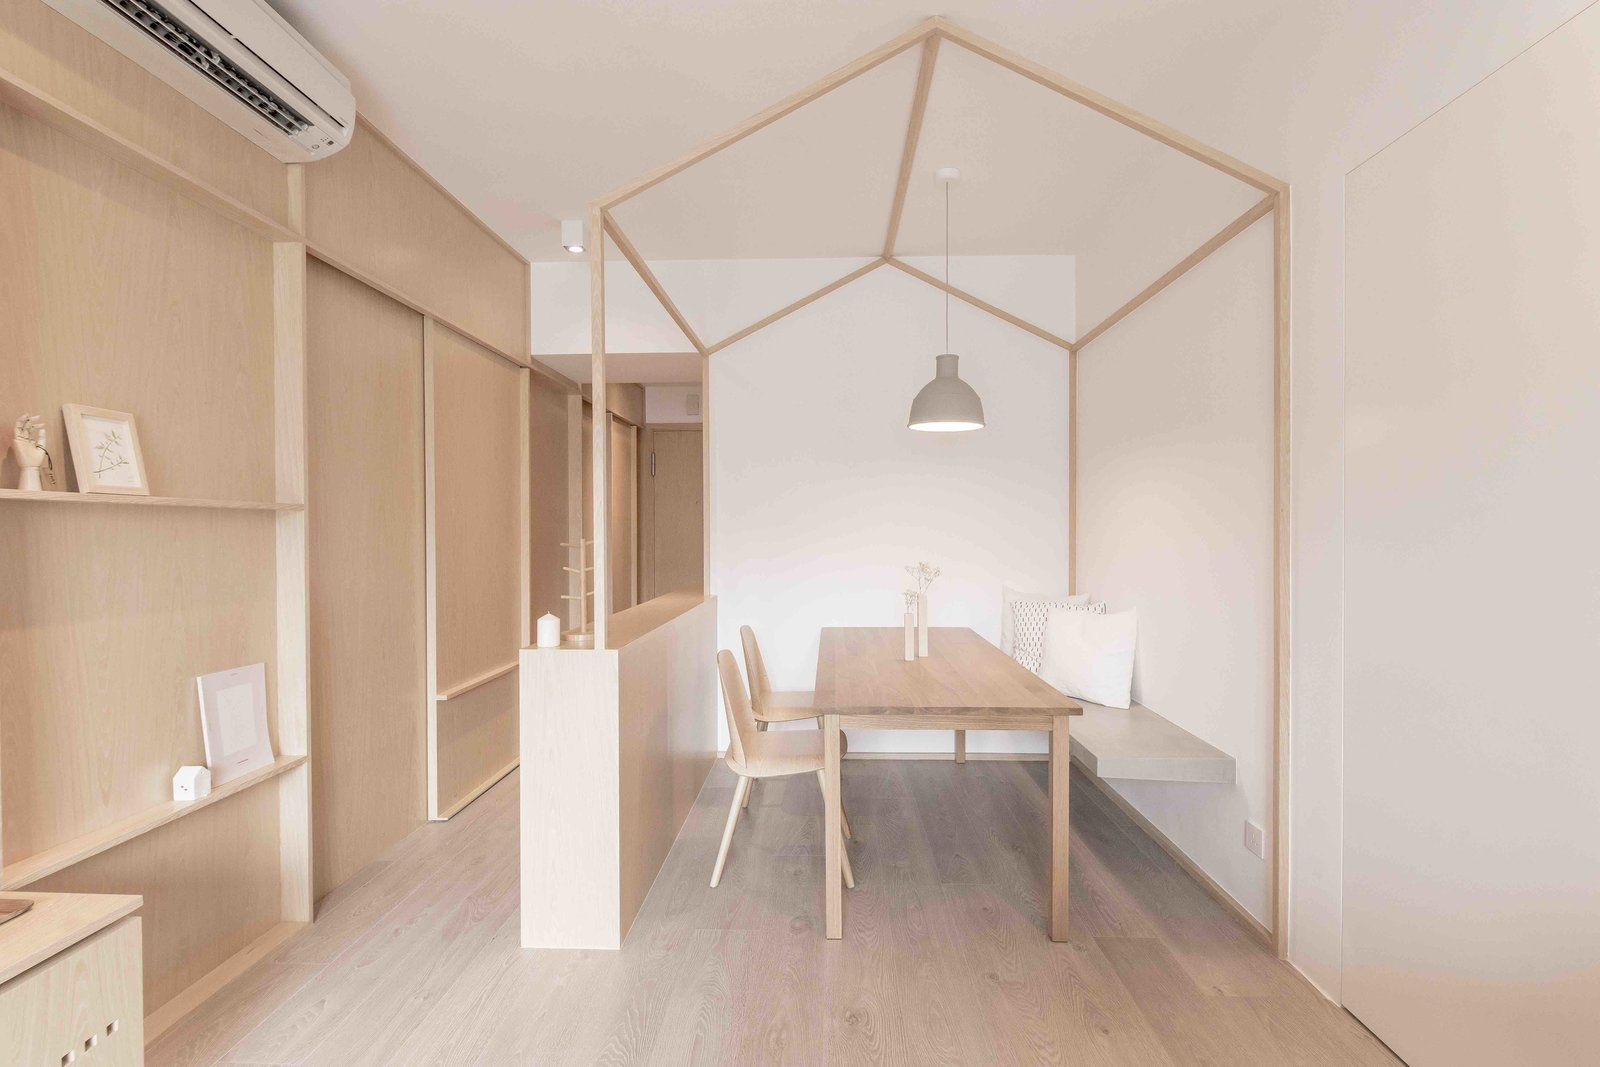 Living Room, Shelves, Ceiling Lighting, Light Hardwood Floor, Pendant Lighting, Bench, Table, and Chair For this 780-square-foot apartment Hong Kong apartment, local practice MNB Design Studio used plywood, smart storage solutions, and tapped into the principles of origami to create a highly structured, minimalist home.  Photo 10 of 21 in 10 Zen Homes That Champion Japanese Design